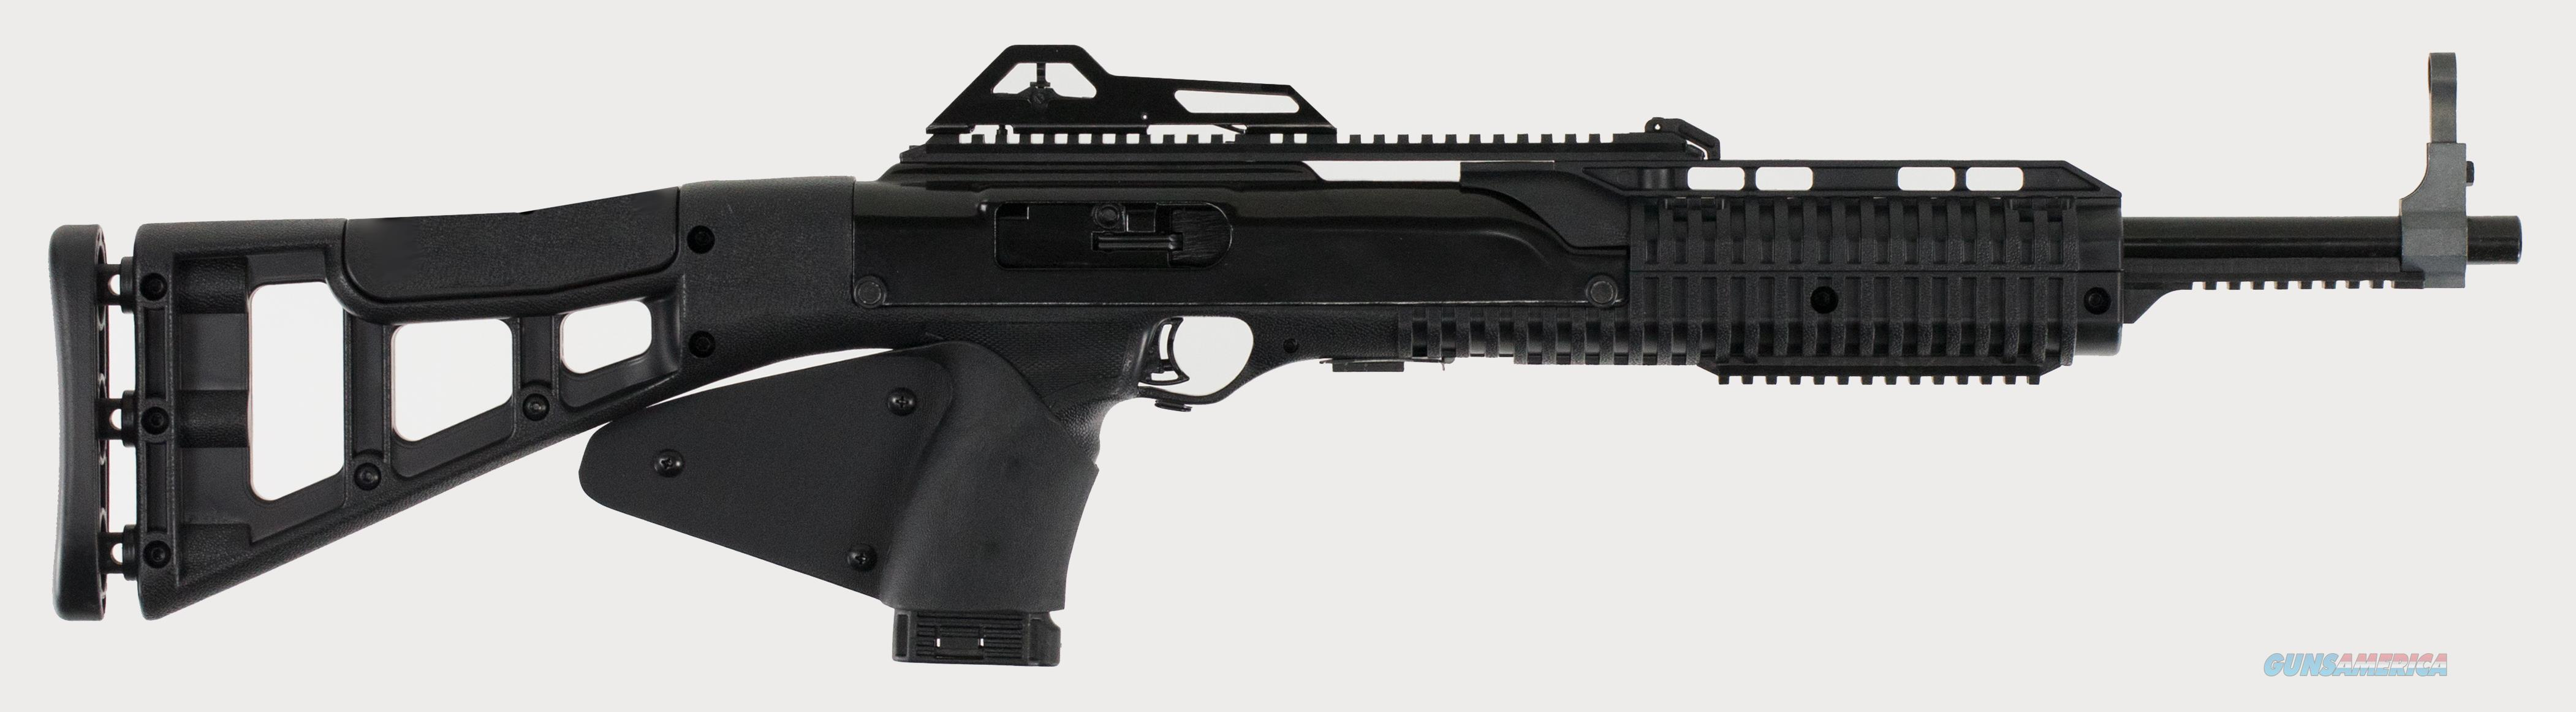 "LDB Supply 4095TSCA 4095TS Carbine *CA Compliant* Semi-Automatic 40 Smith & Wesson 17.5"" 10+1  Guns > Rifles > L Misc Rifles"